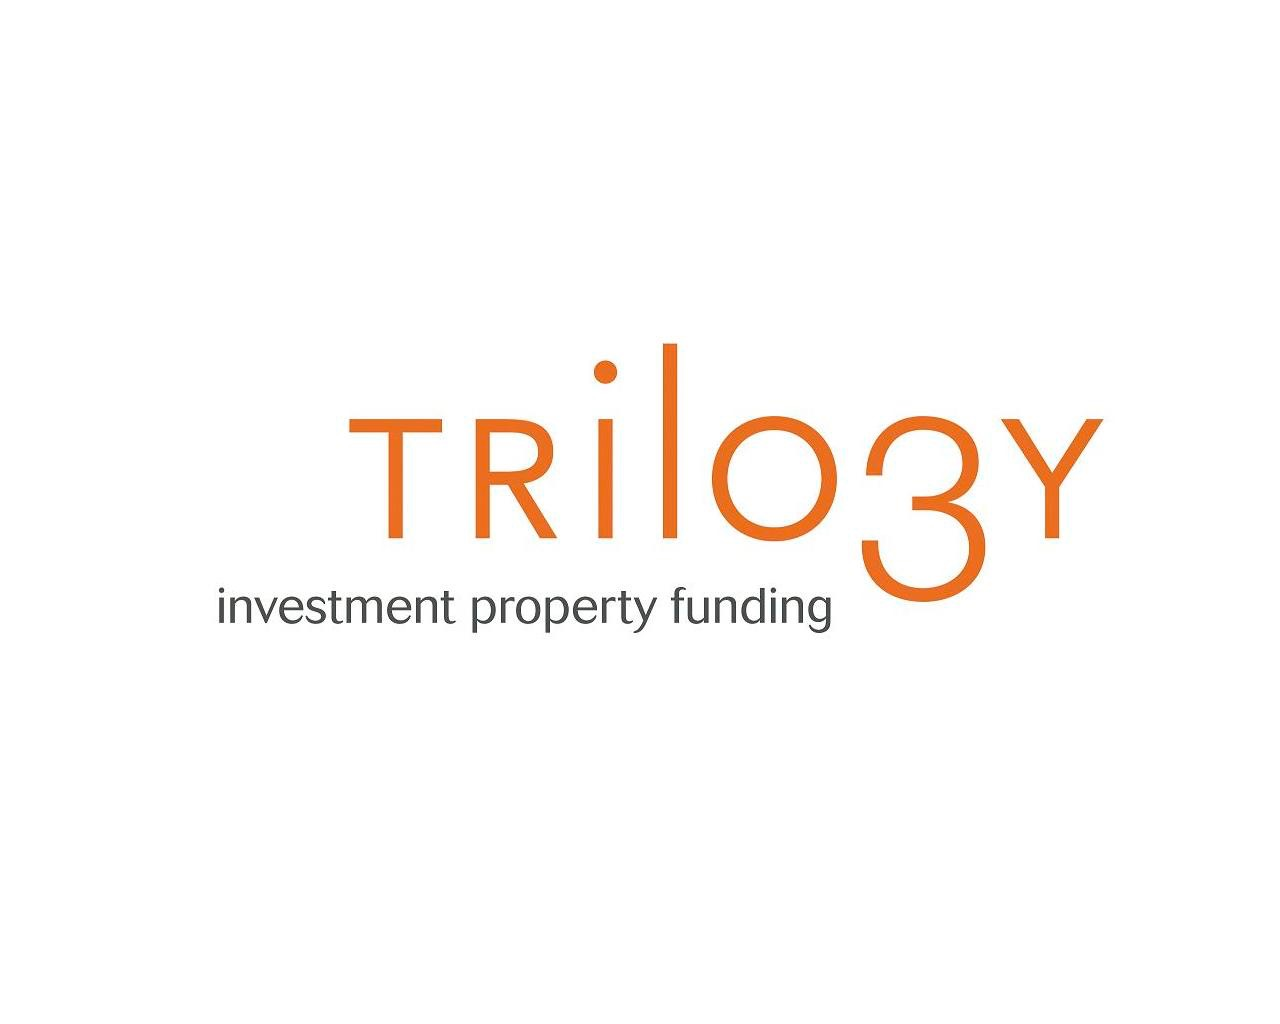 Trilogy, Logo - Canberra Real Estate - Business In Networking Group